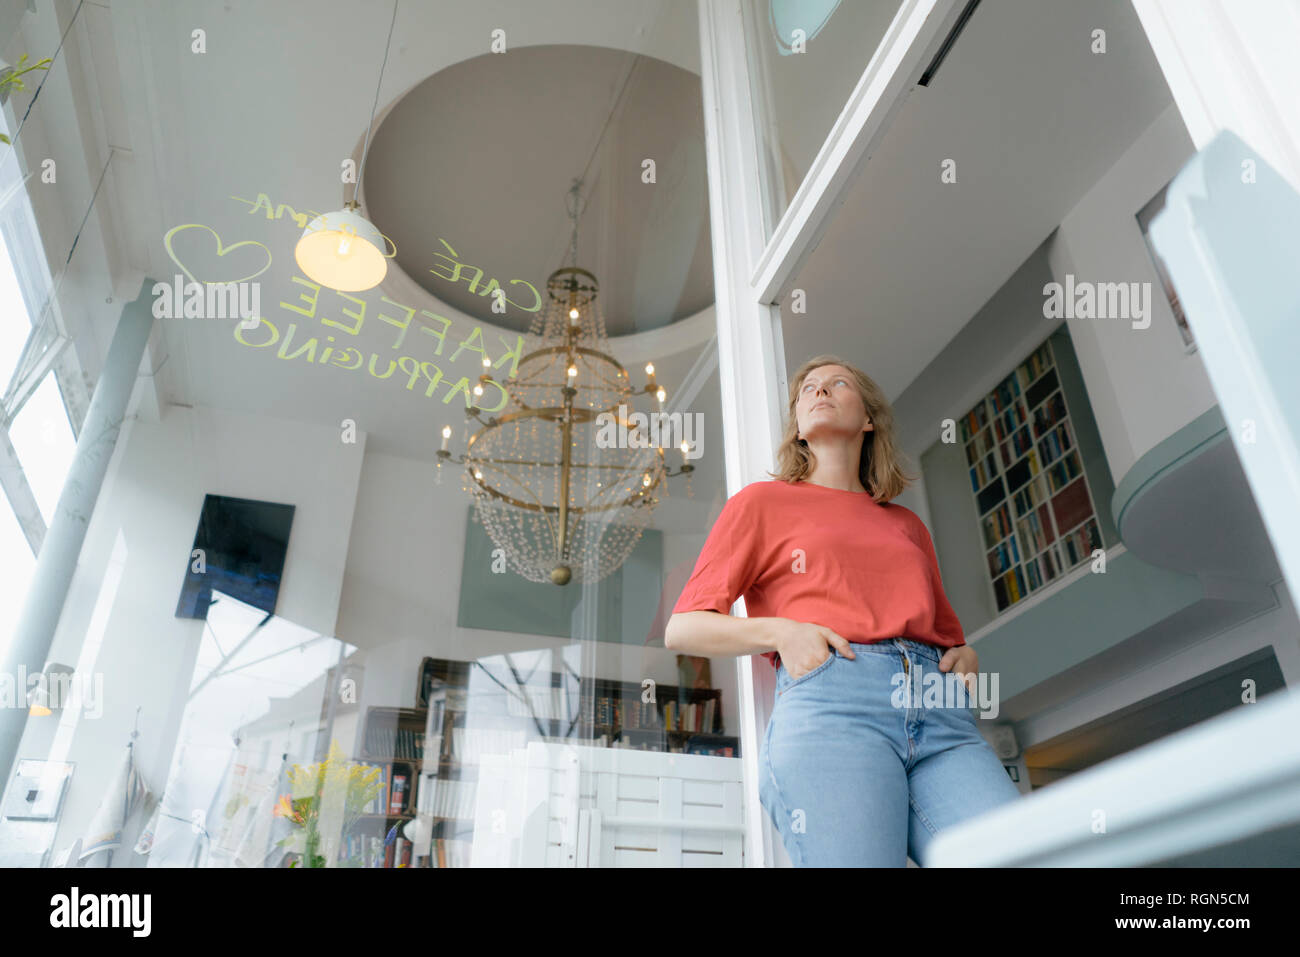 Low angle view of young woman standing in a cafe - Stock Image